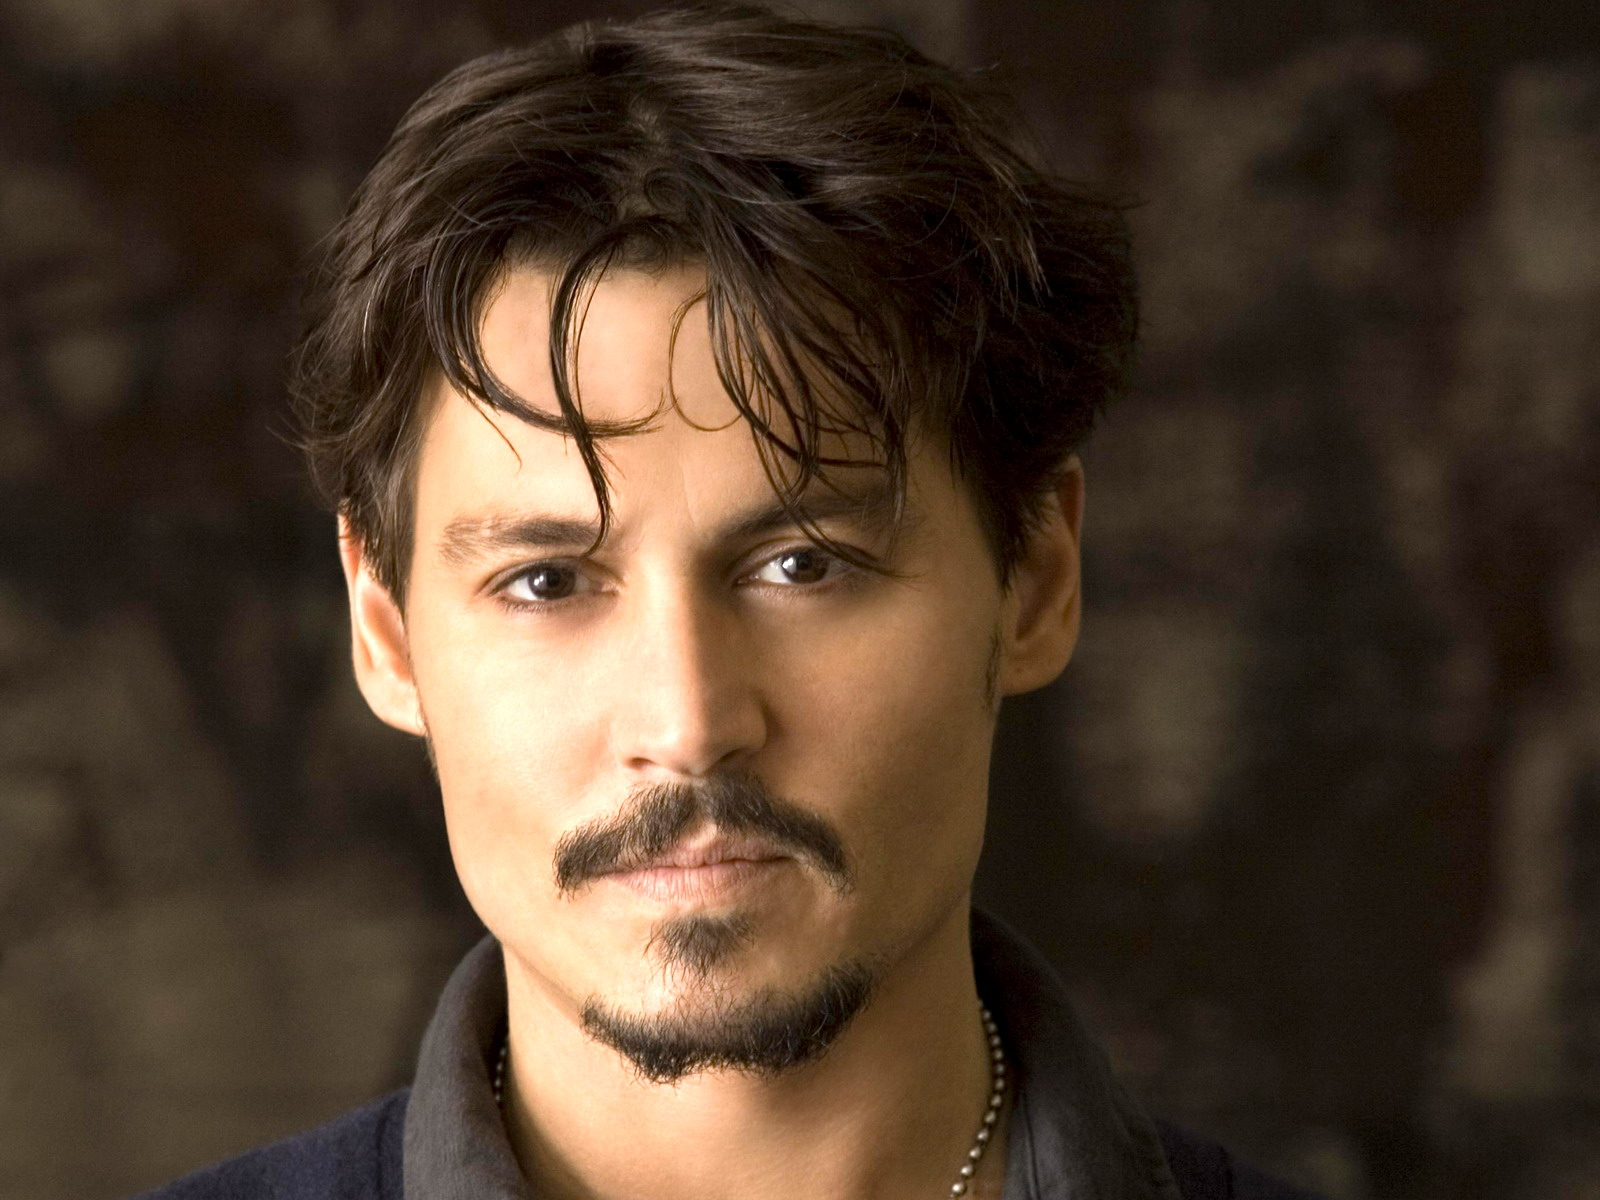 Johnny Depp Johnny Depp Photo 33763824 Fanpop